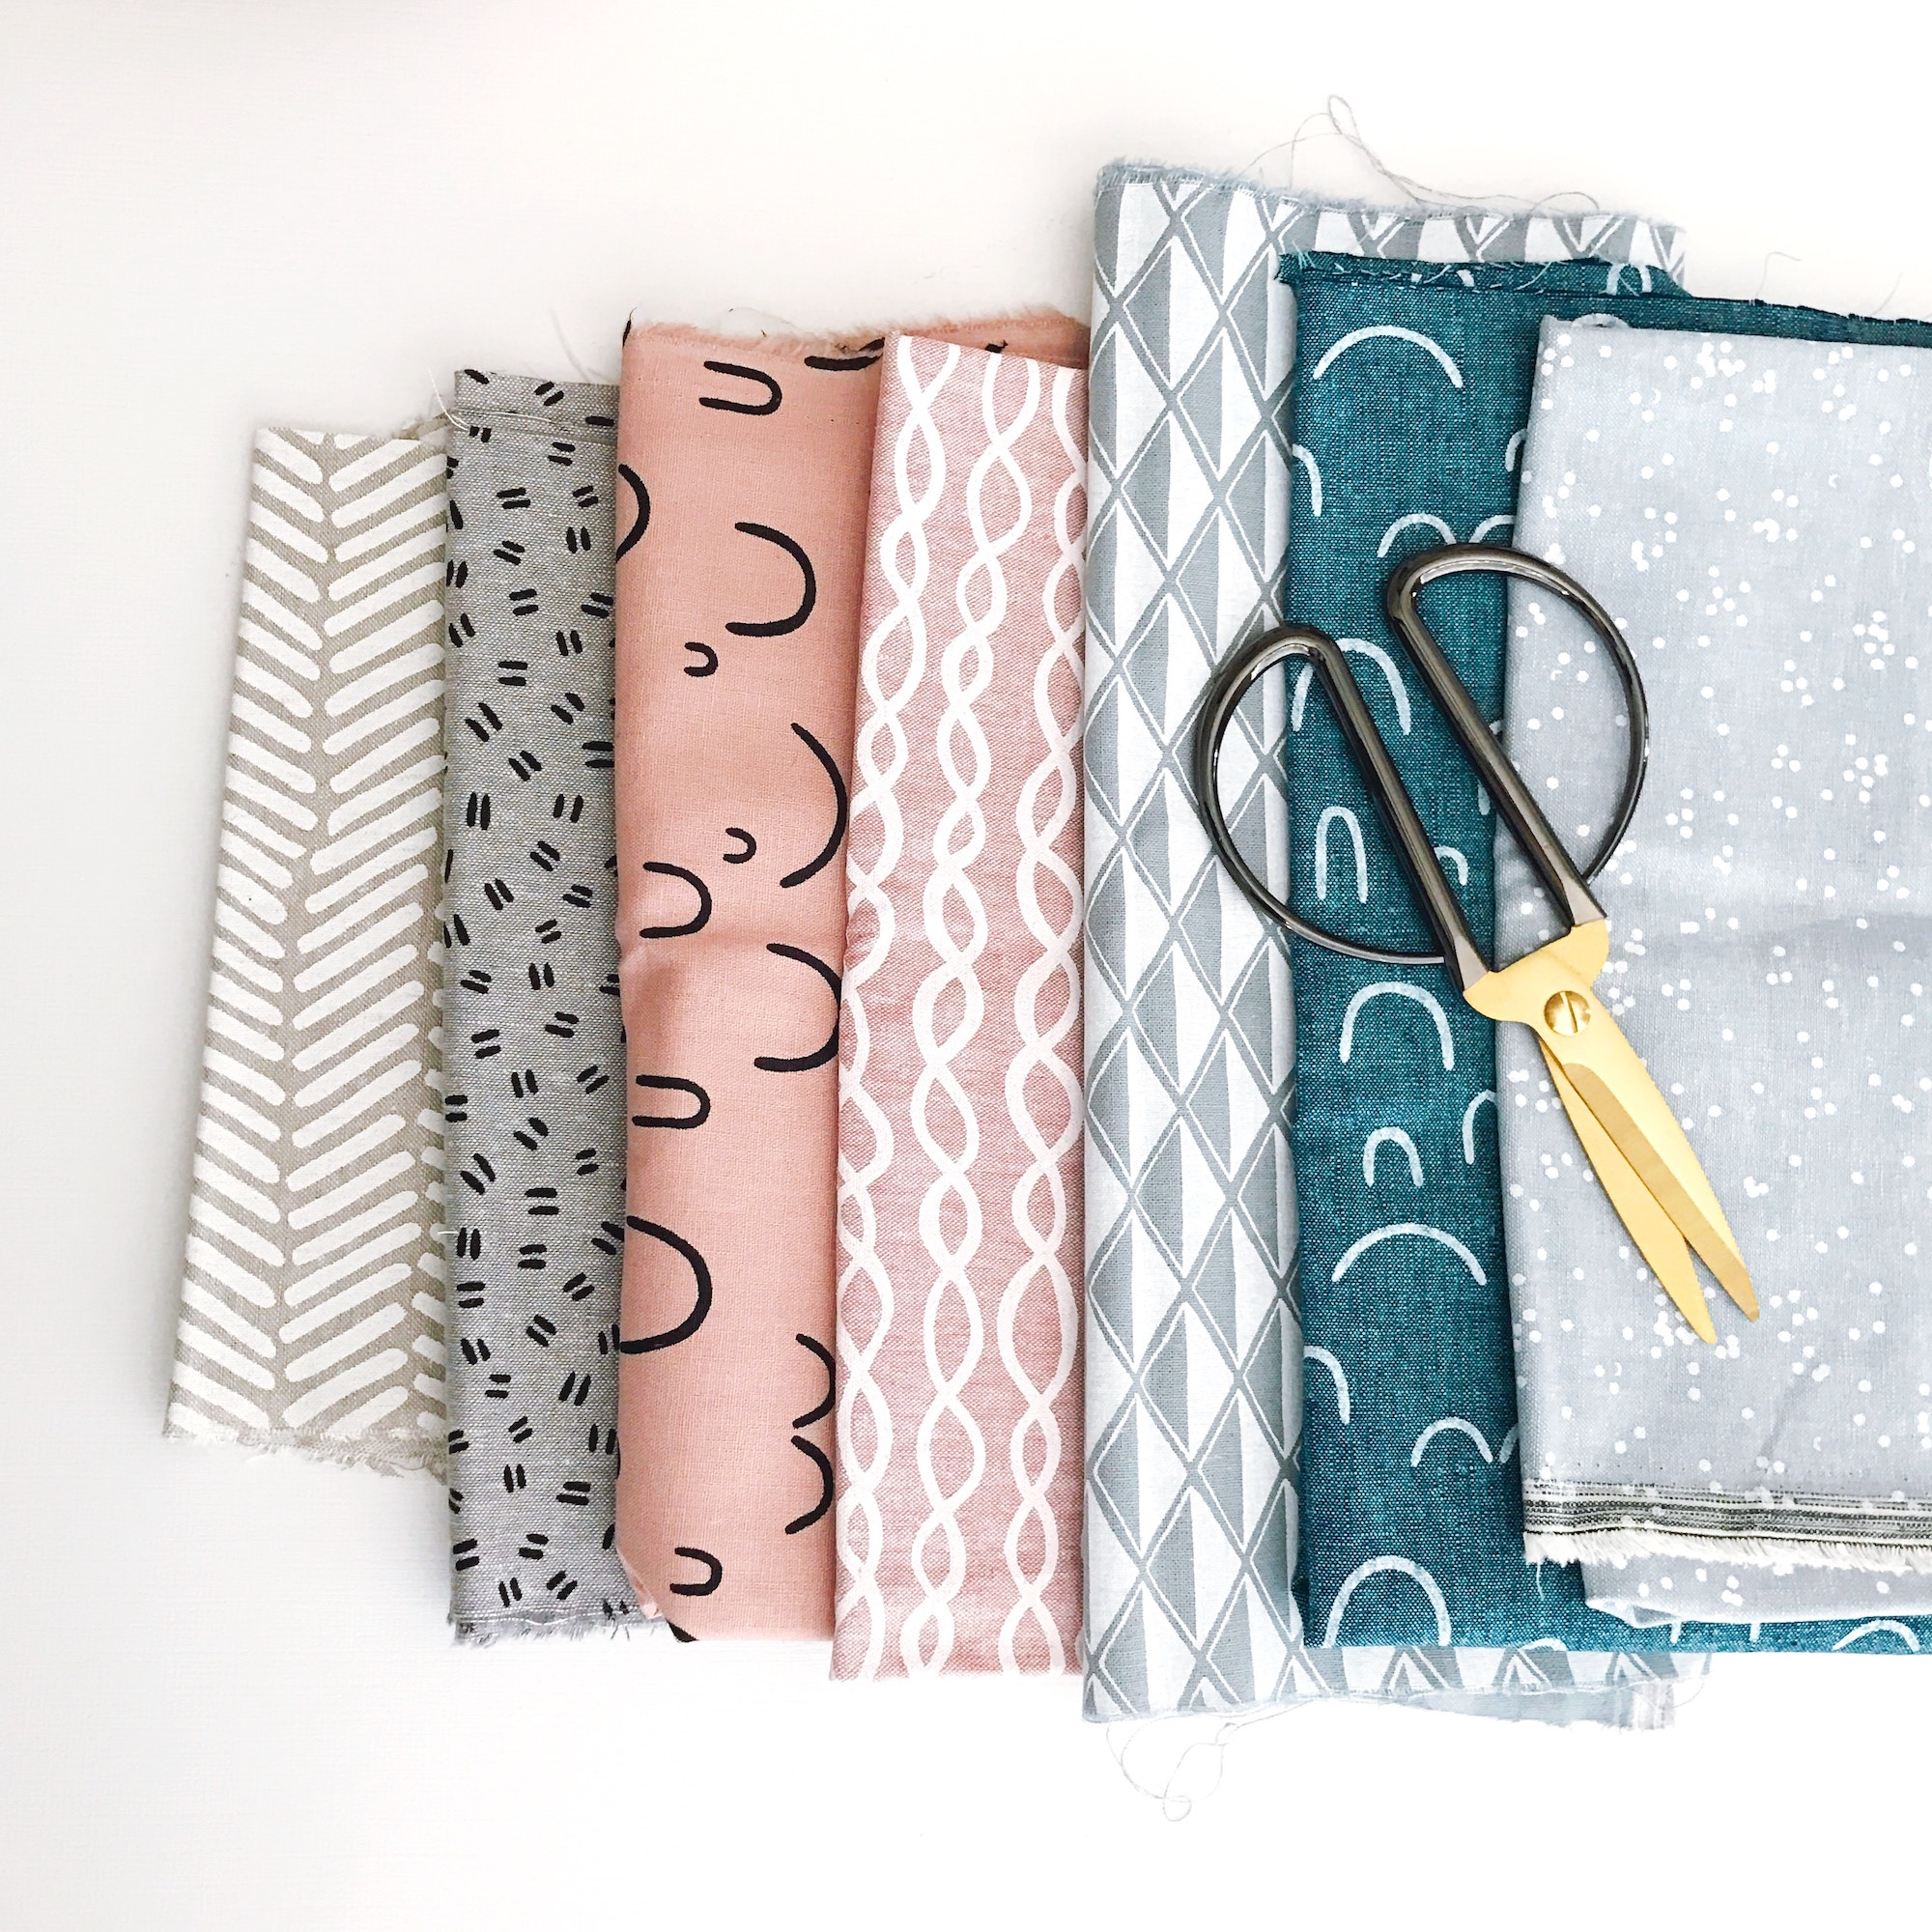 Several different pieces of fabric